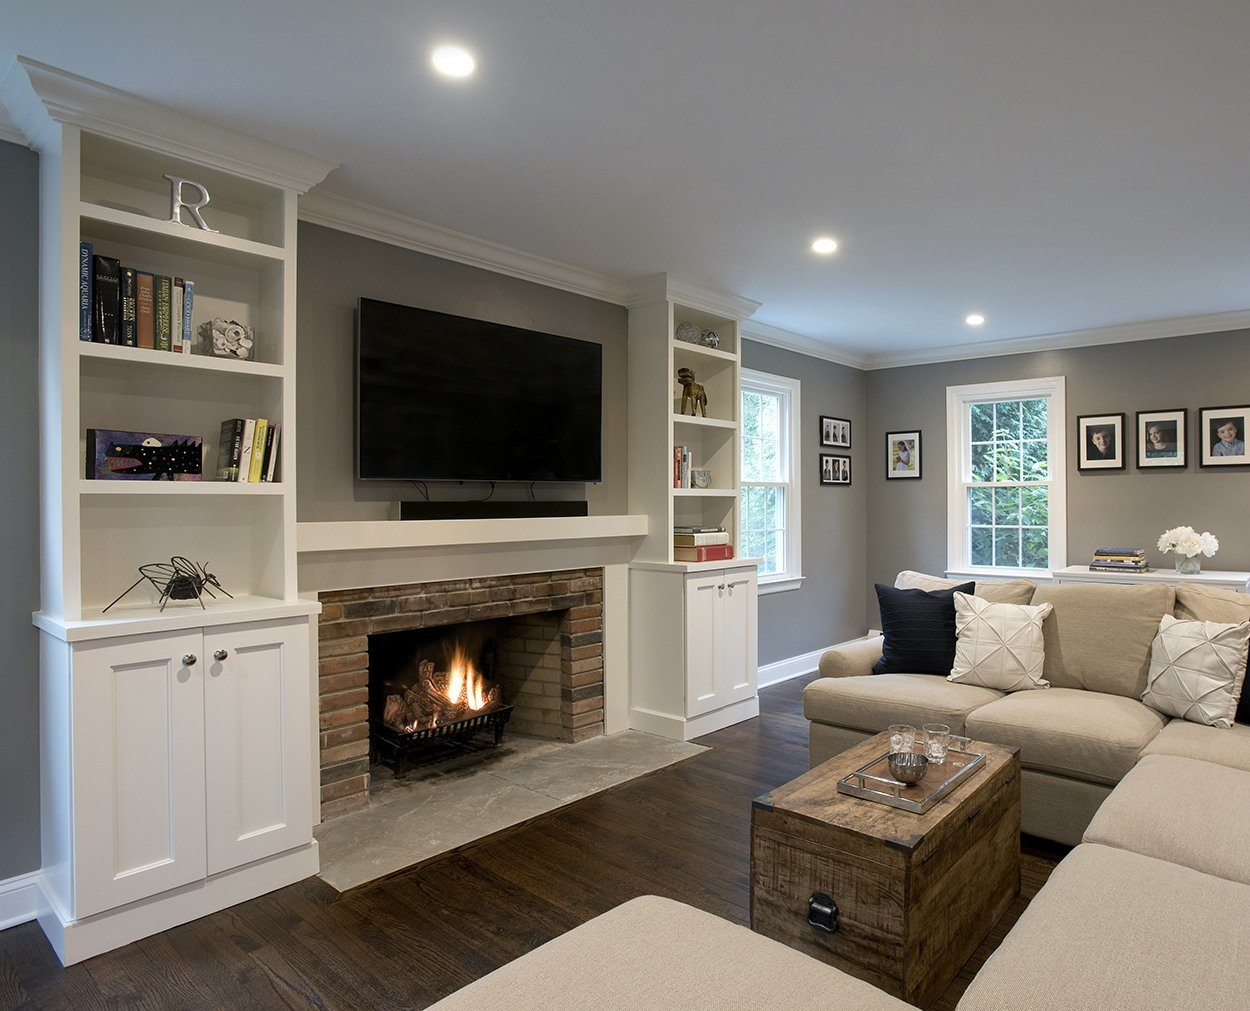 Livingroom renovation with mantle and fireplace in Wilton CT remodel